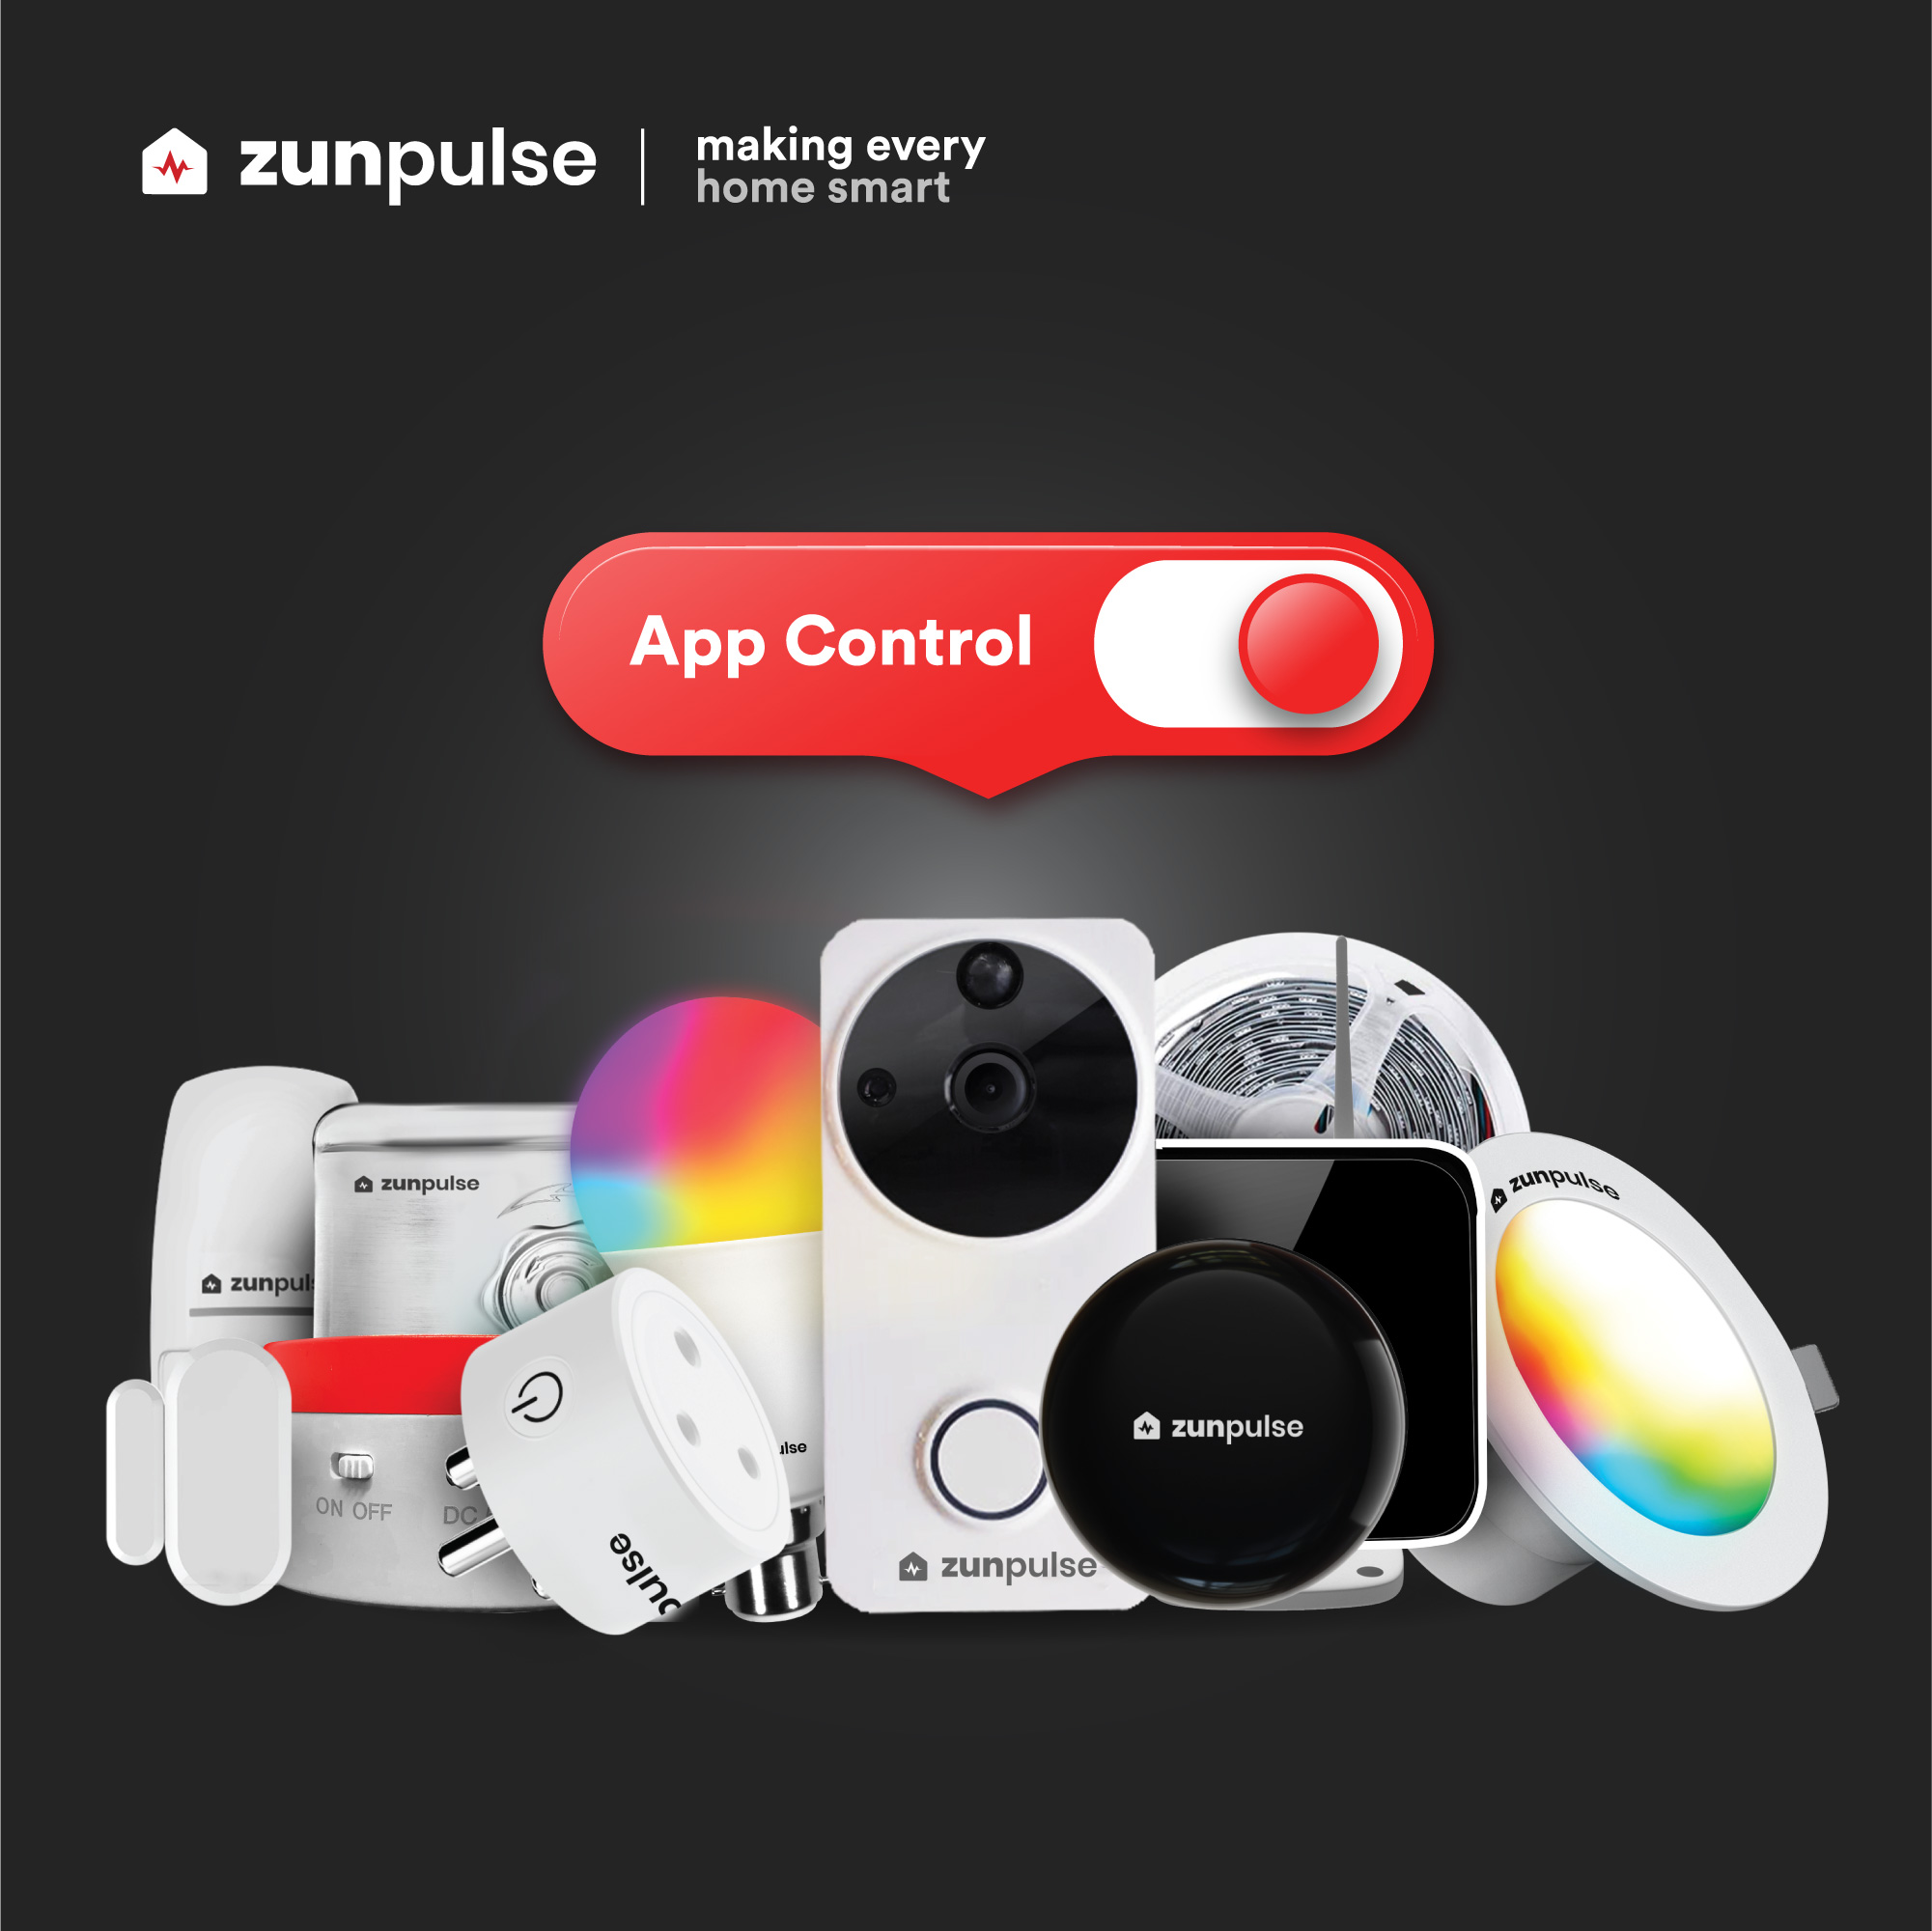 zunpulse expands its IoT Smart Appliances Product Portfolio with a new range of smart products